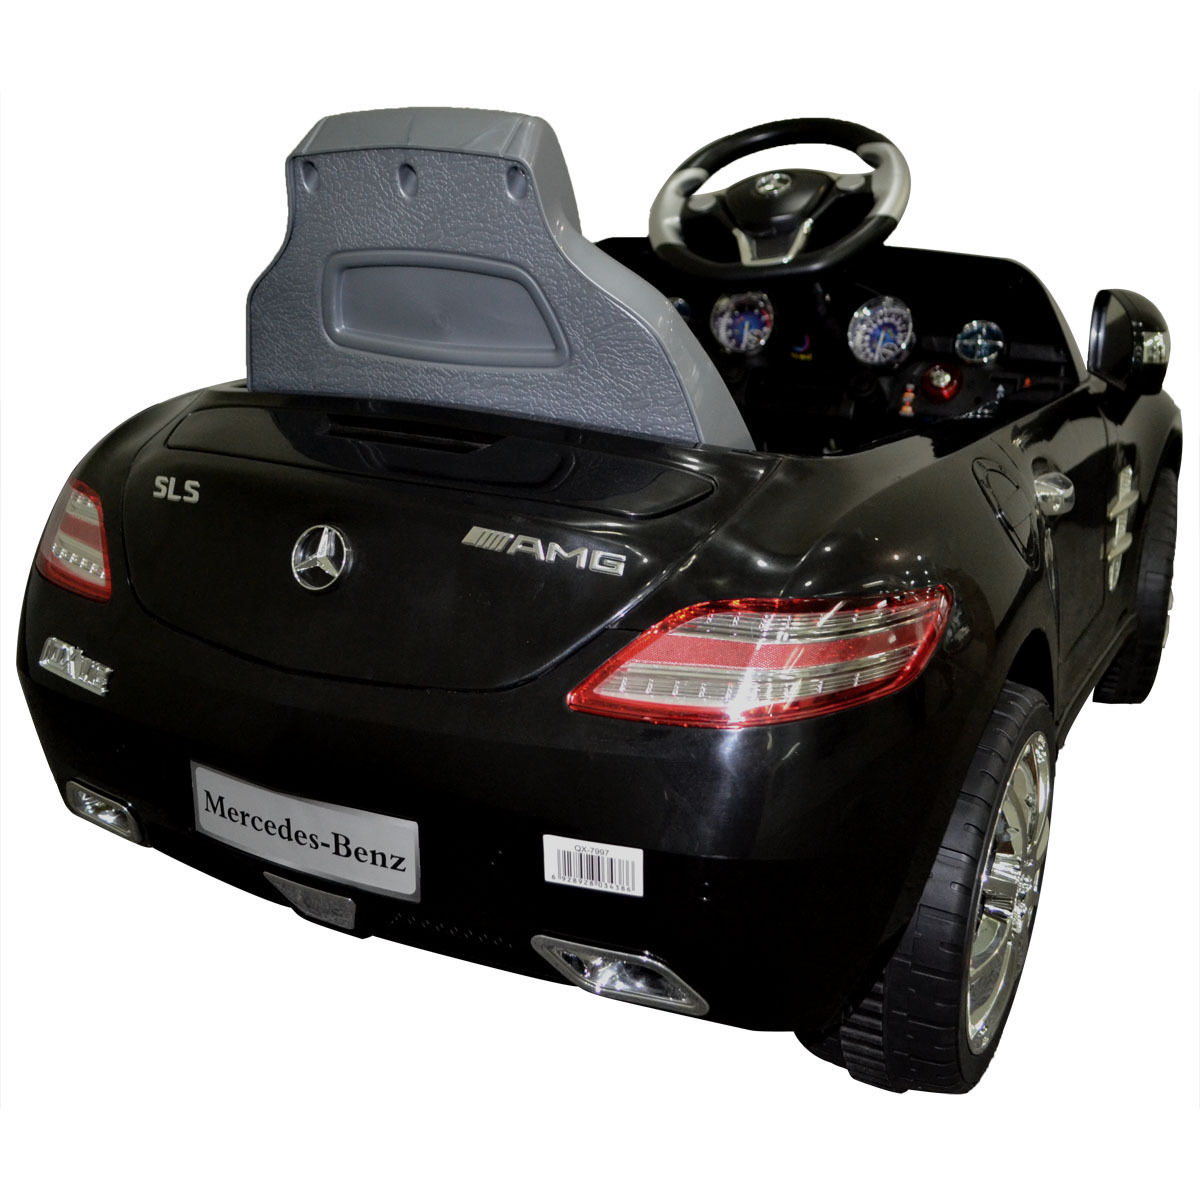 costway black mercedes benz sls rc mp3 kids ride on car electric battery toy walmartcom